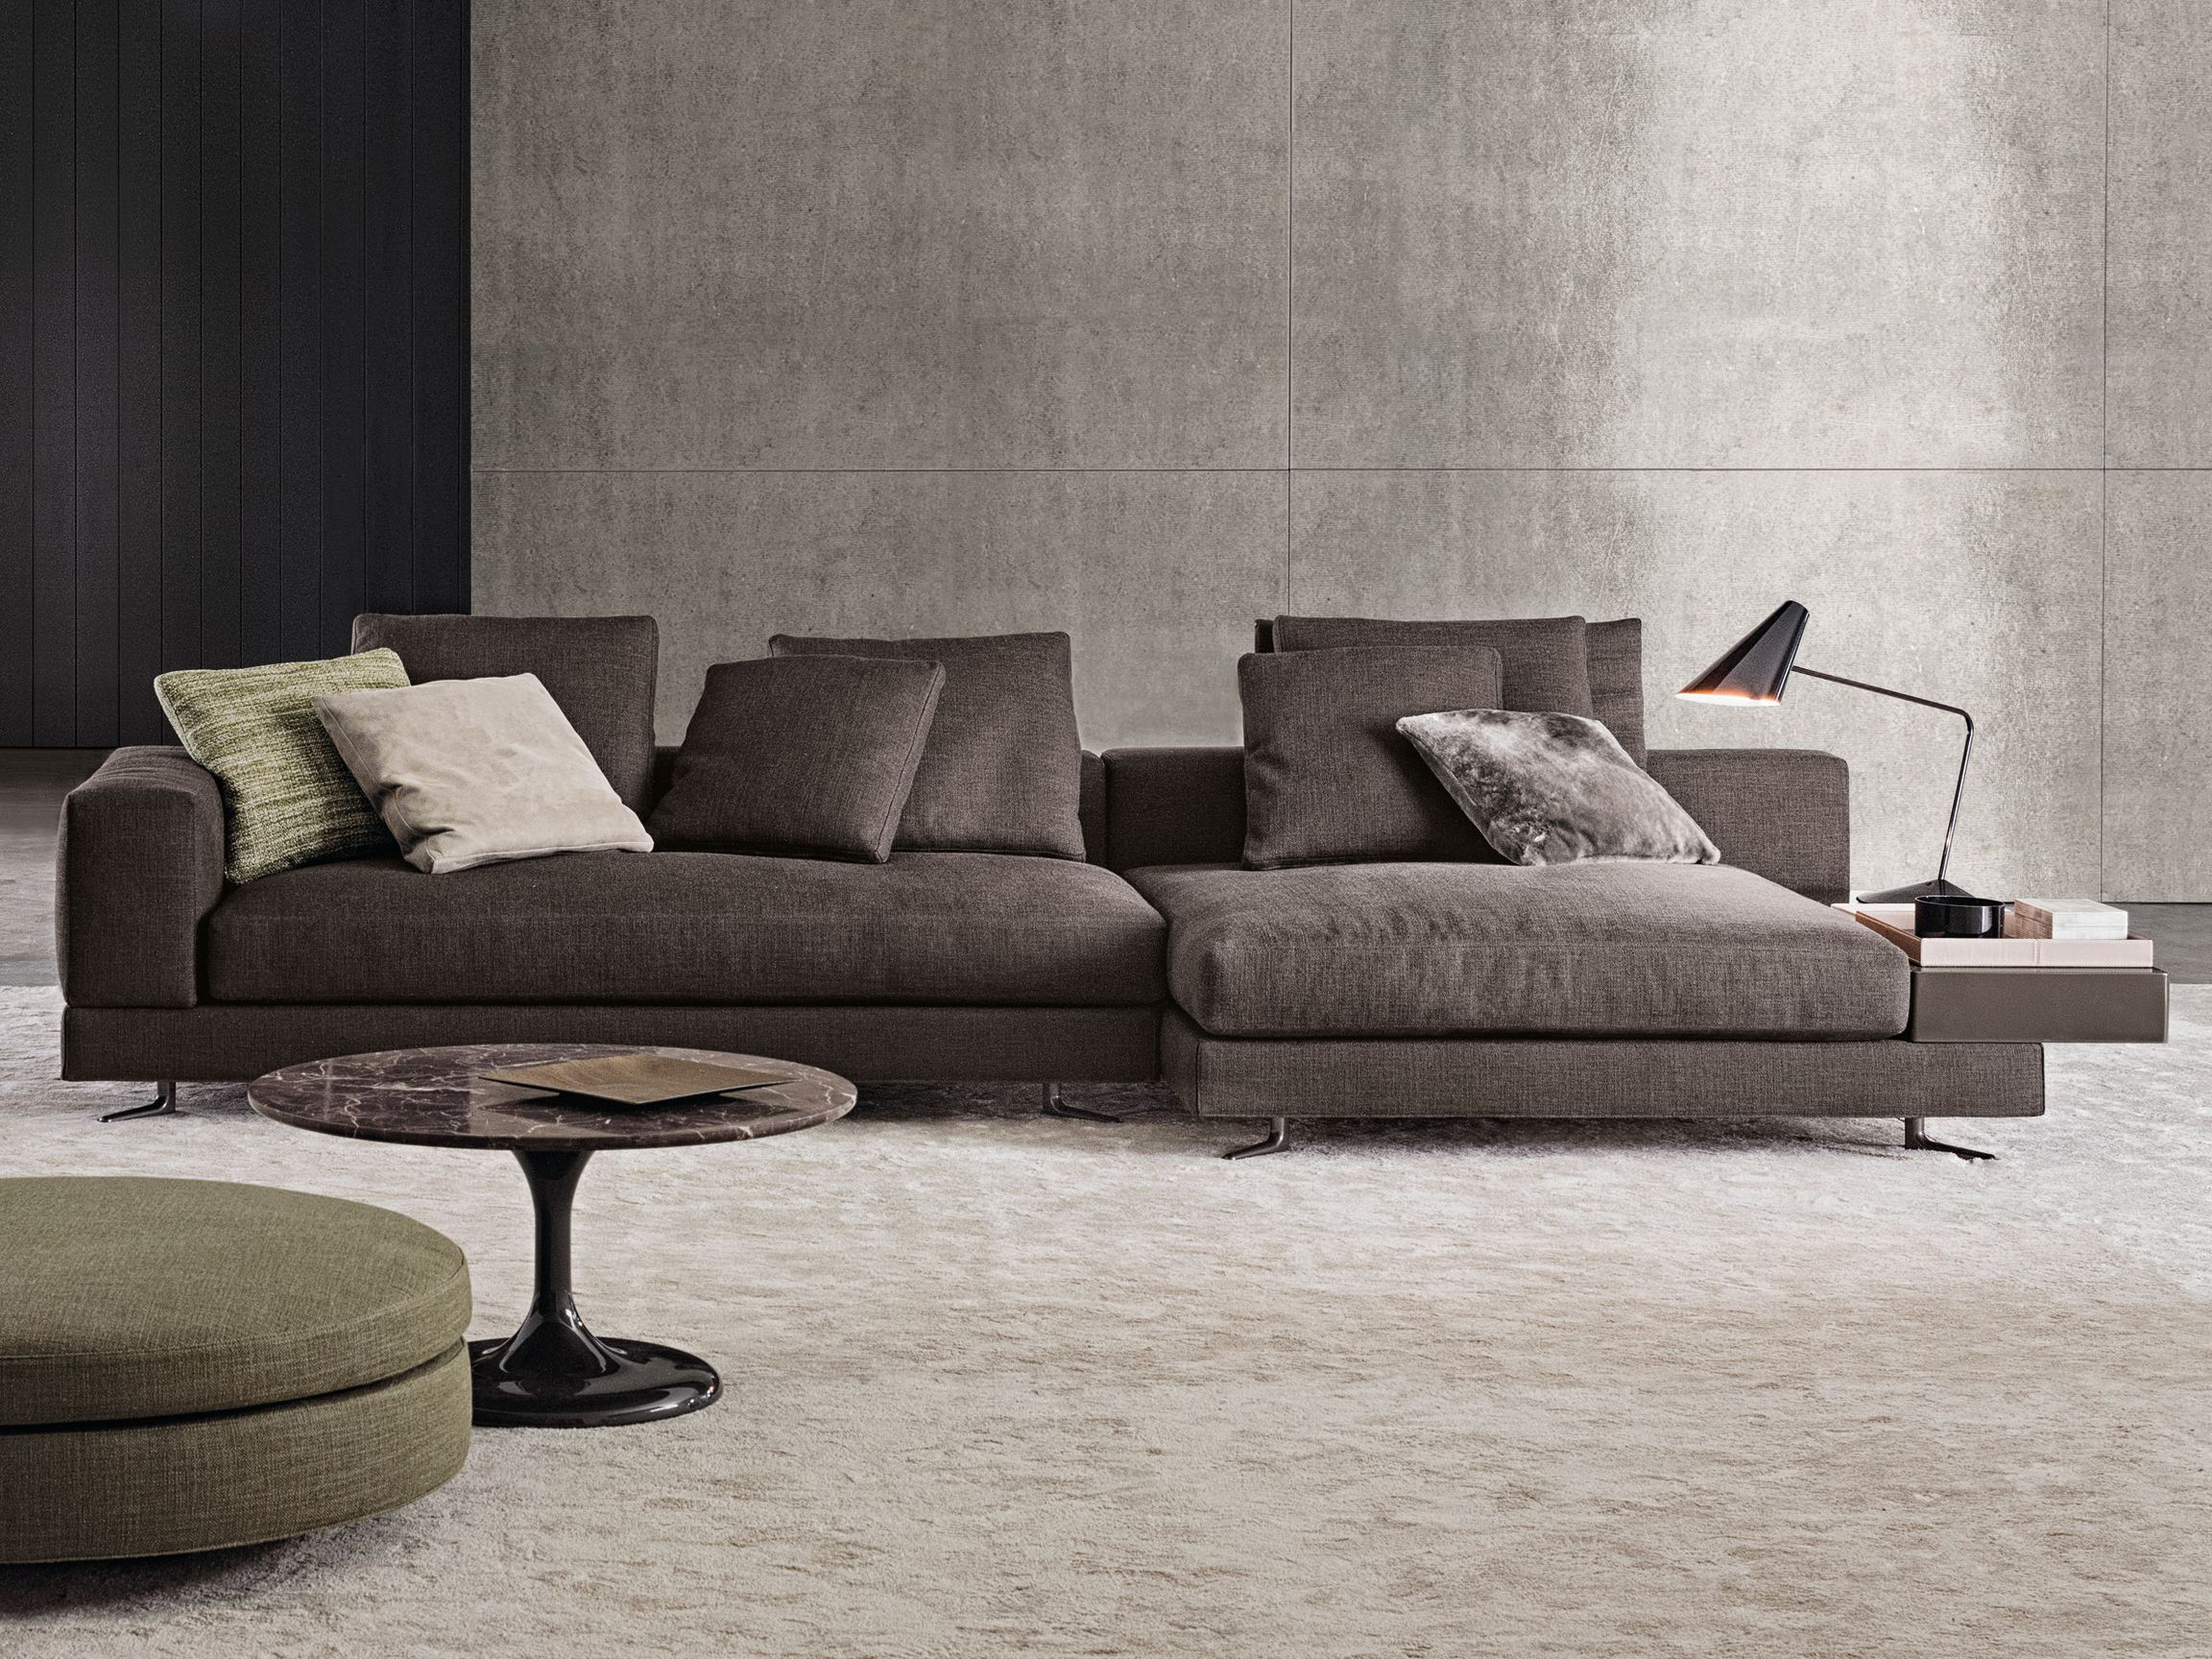 White fabric sofa by minotti for Divano minotti